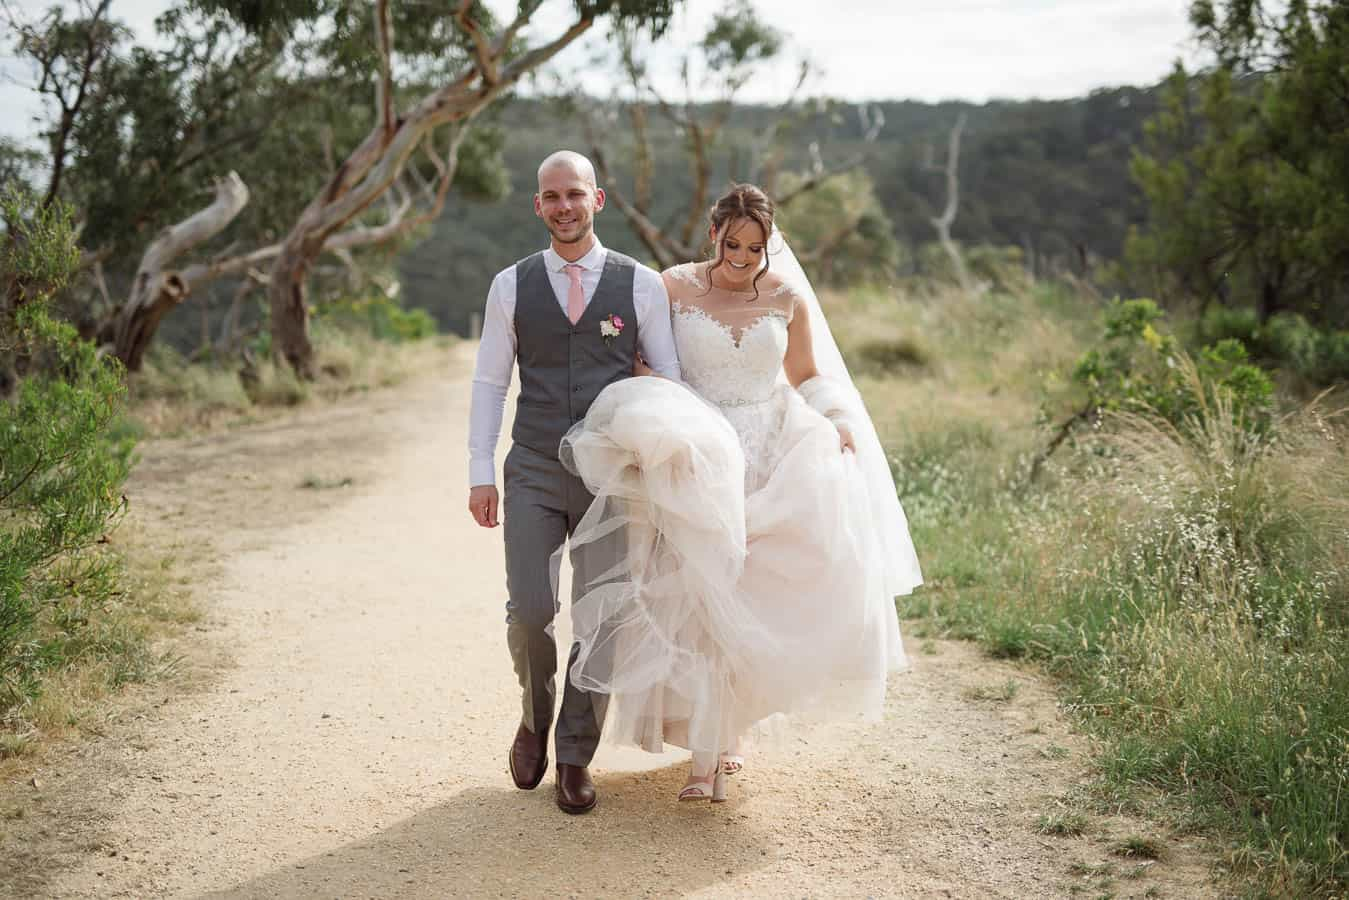 Bride and Groom walking at Teddy's lookout in Lorne